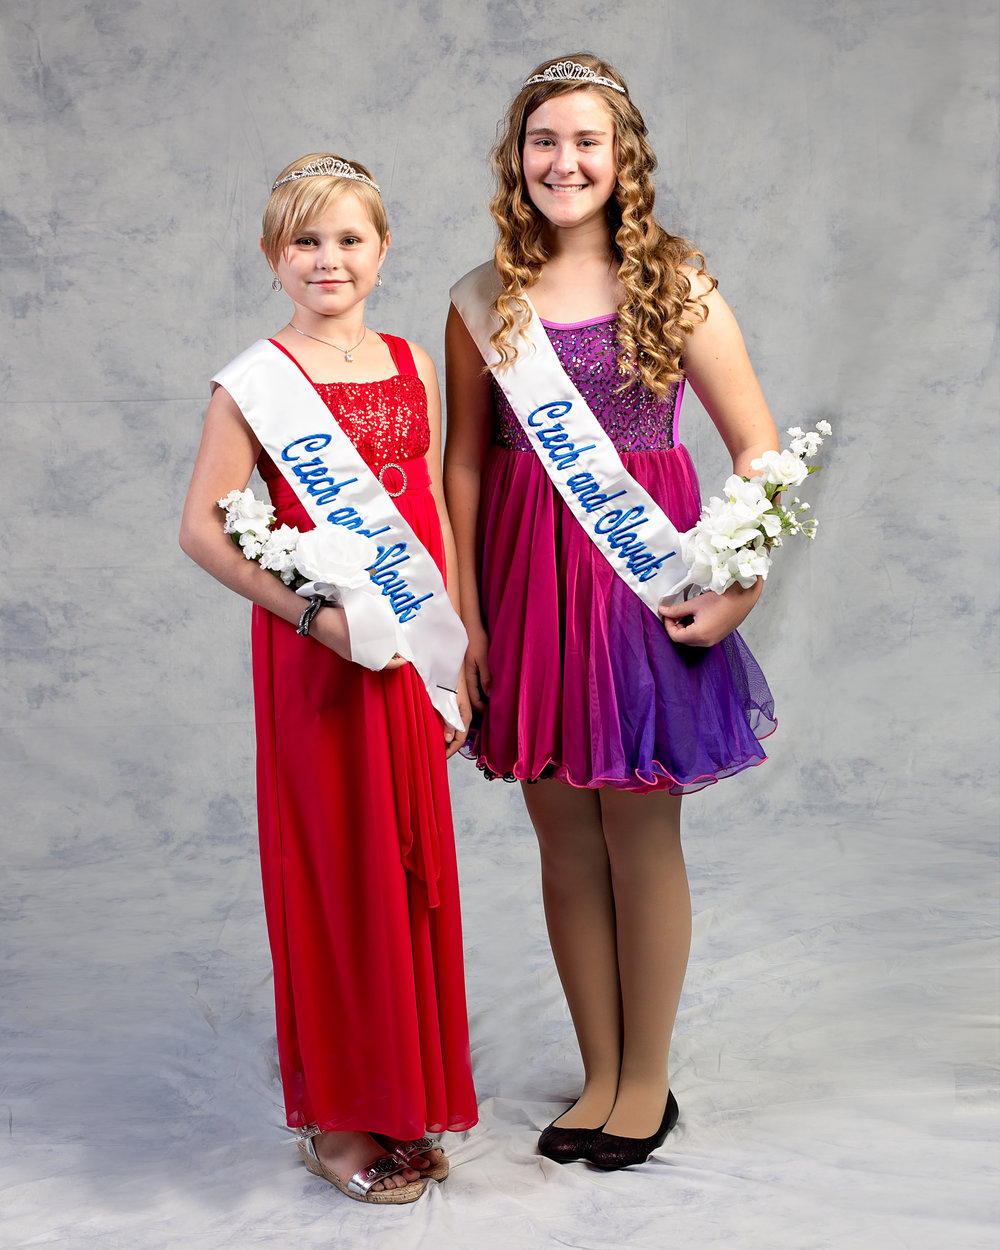 HPR Queen's Coronation 2016-79.jpg